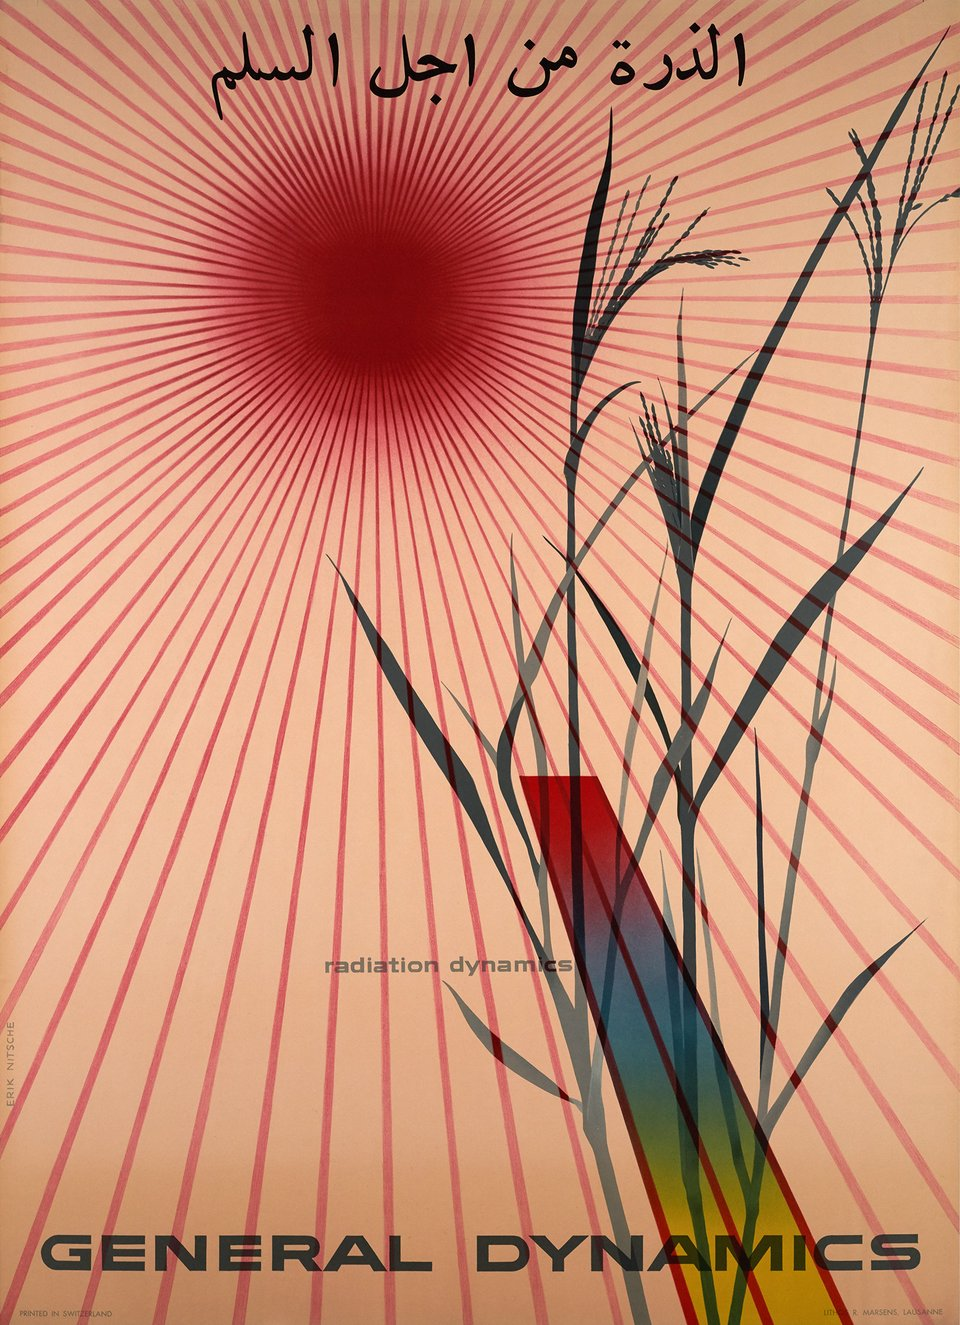 General Dynamics, Radiation dynamics – Vintage poster – Erik NITSCHE – 1956